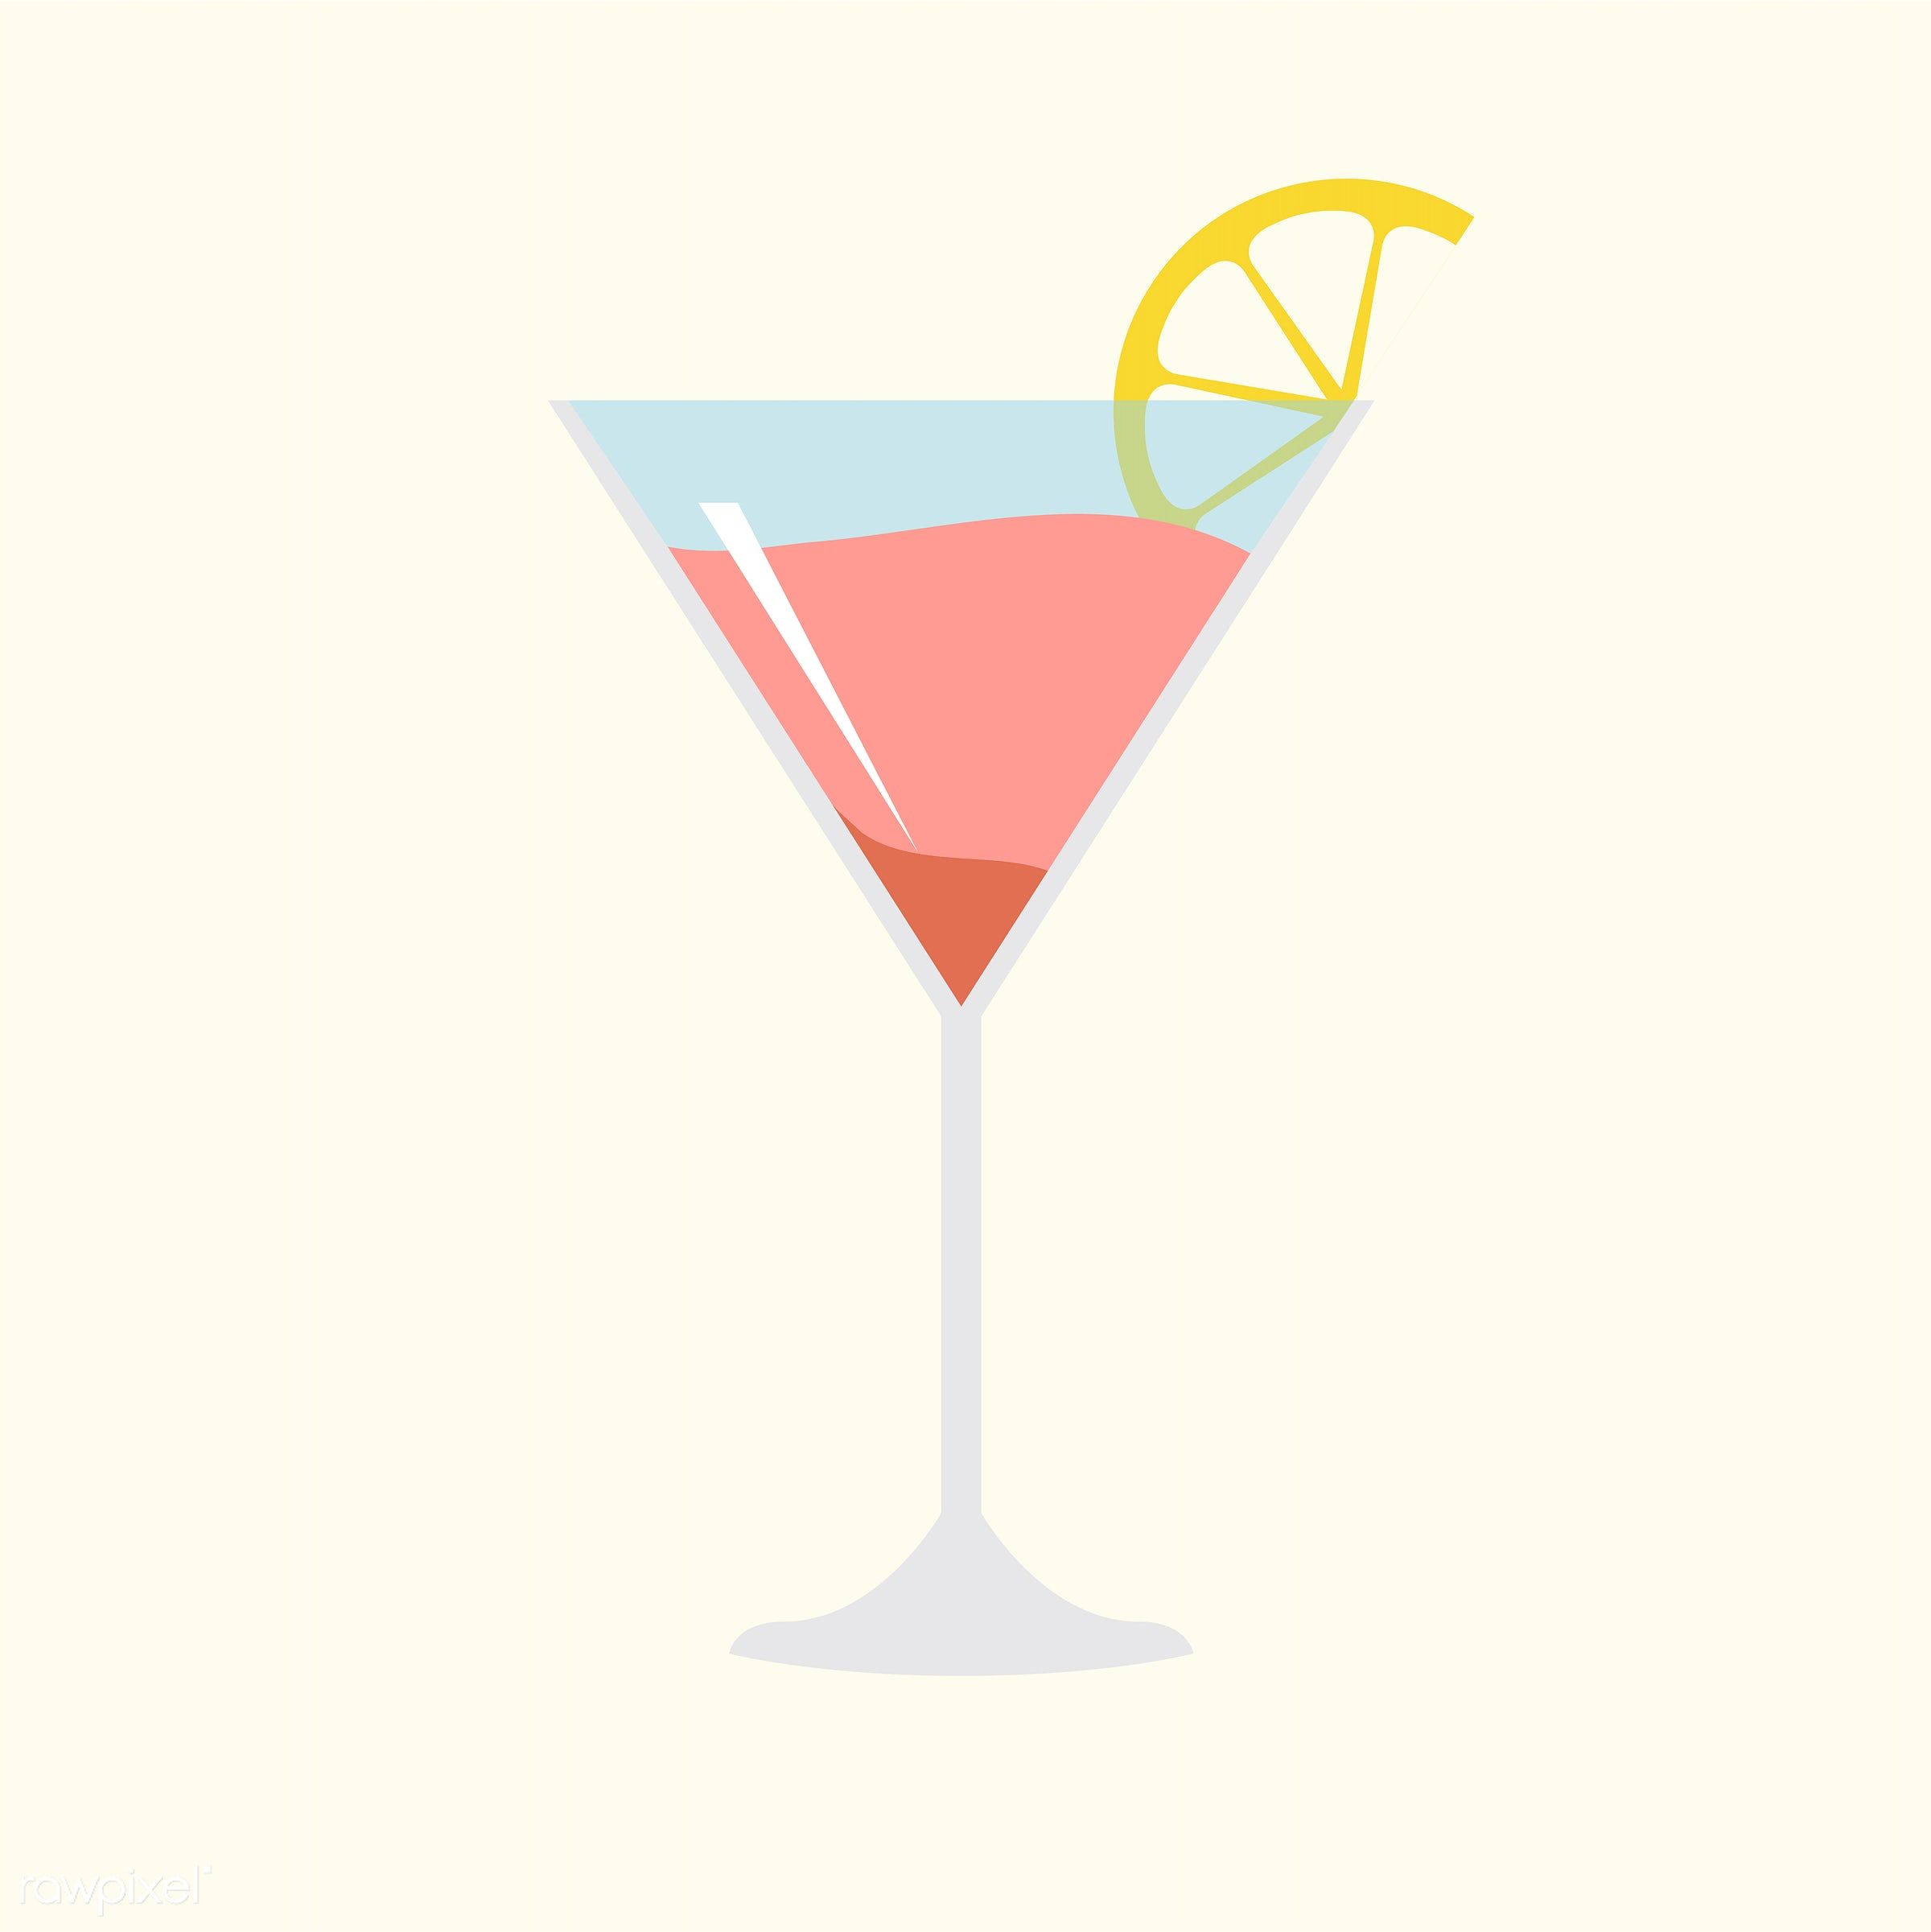 vector, illustration, graphic, cute, sweet, girly, pastel, cocktail, drink, alcohol